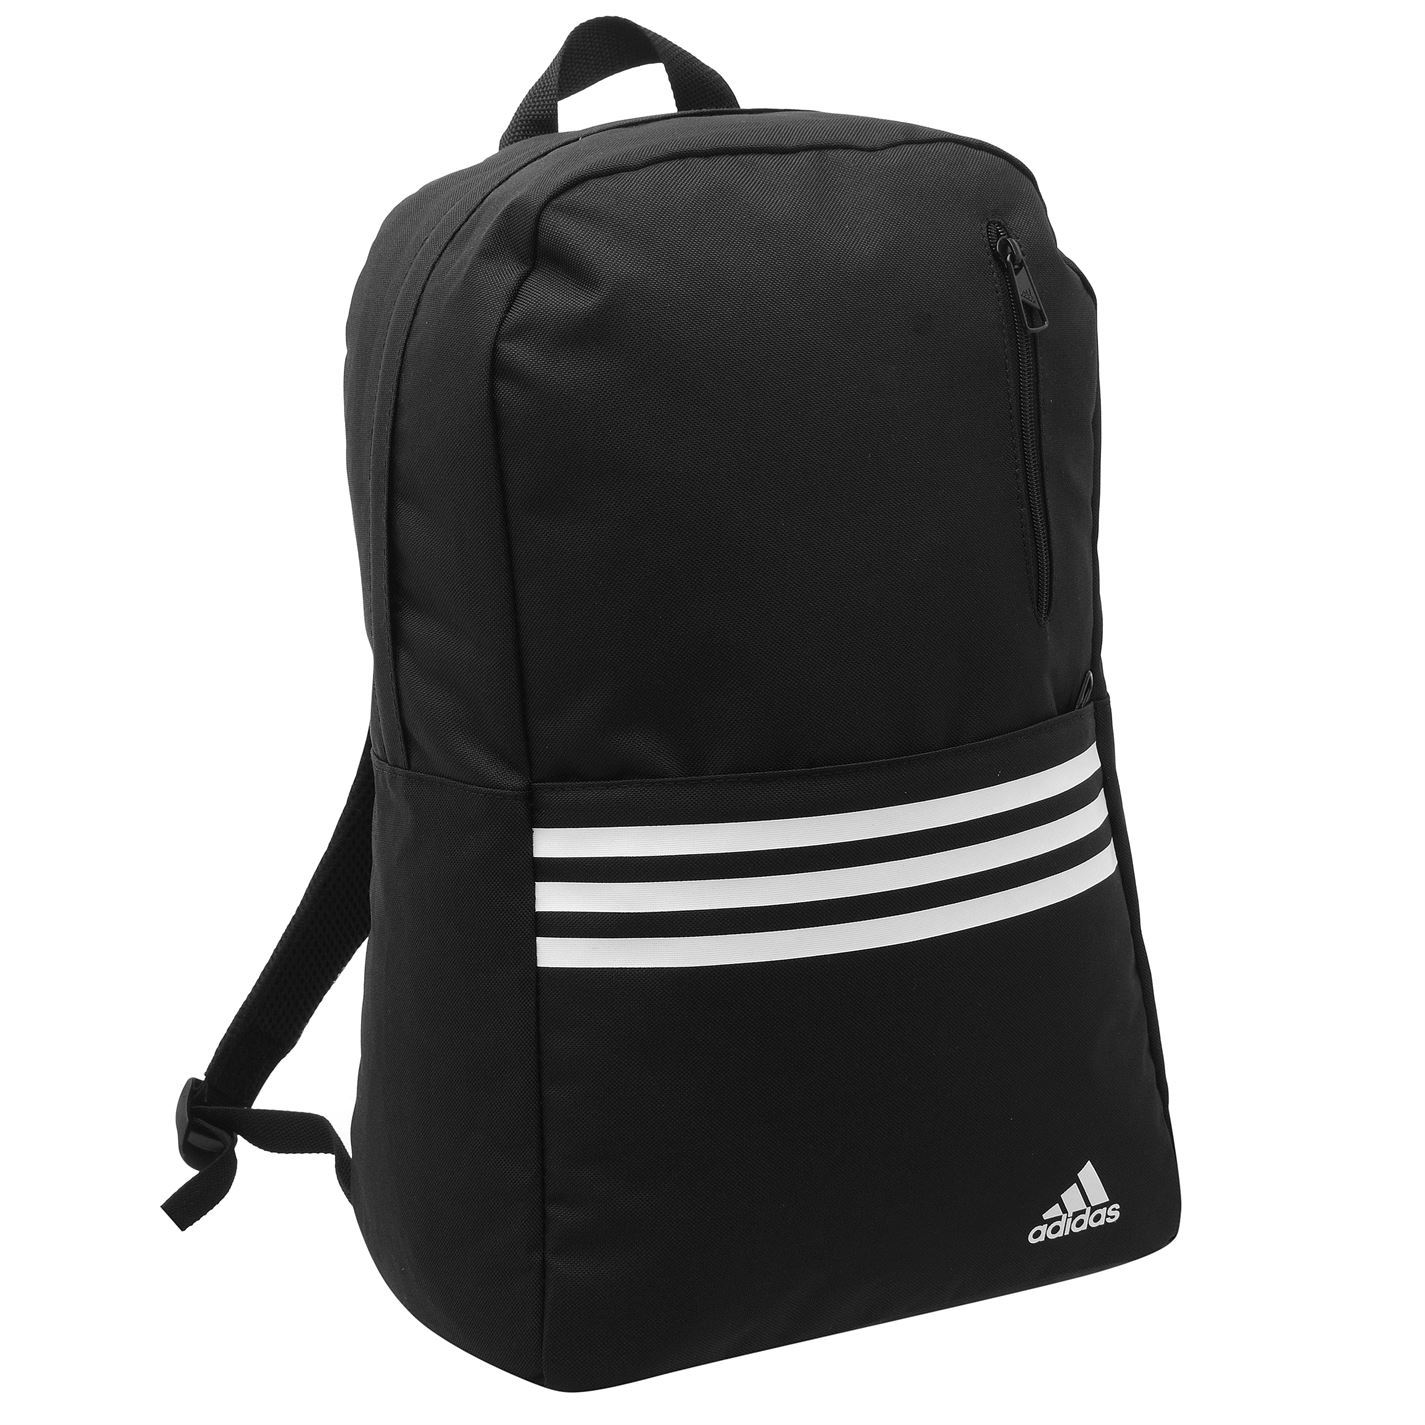 855b57f1bc Sports Direct Adidas School Bags